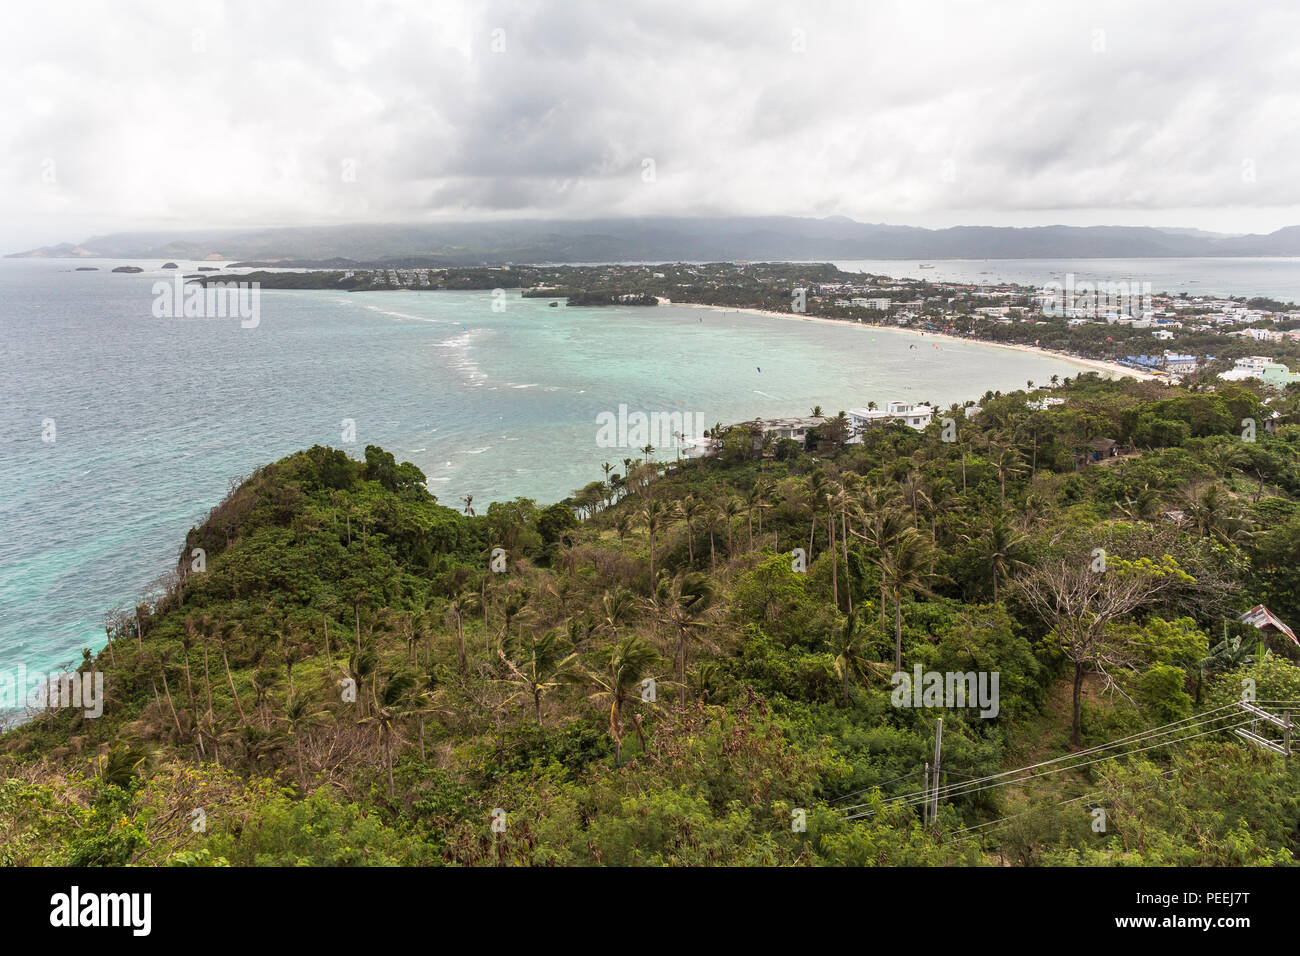 View over the island of boracay on the philippines - Stock Image